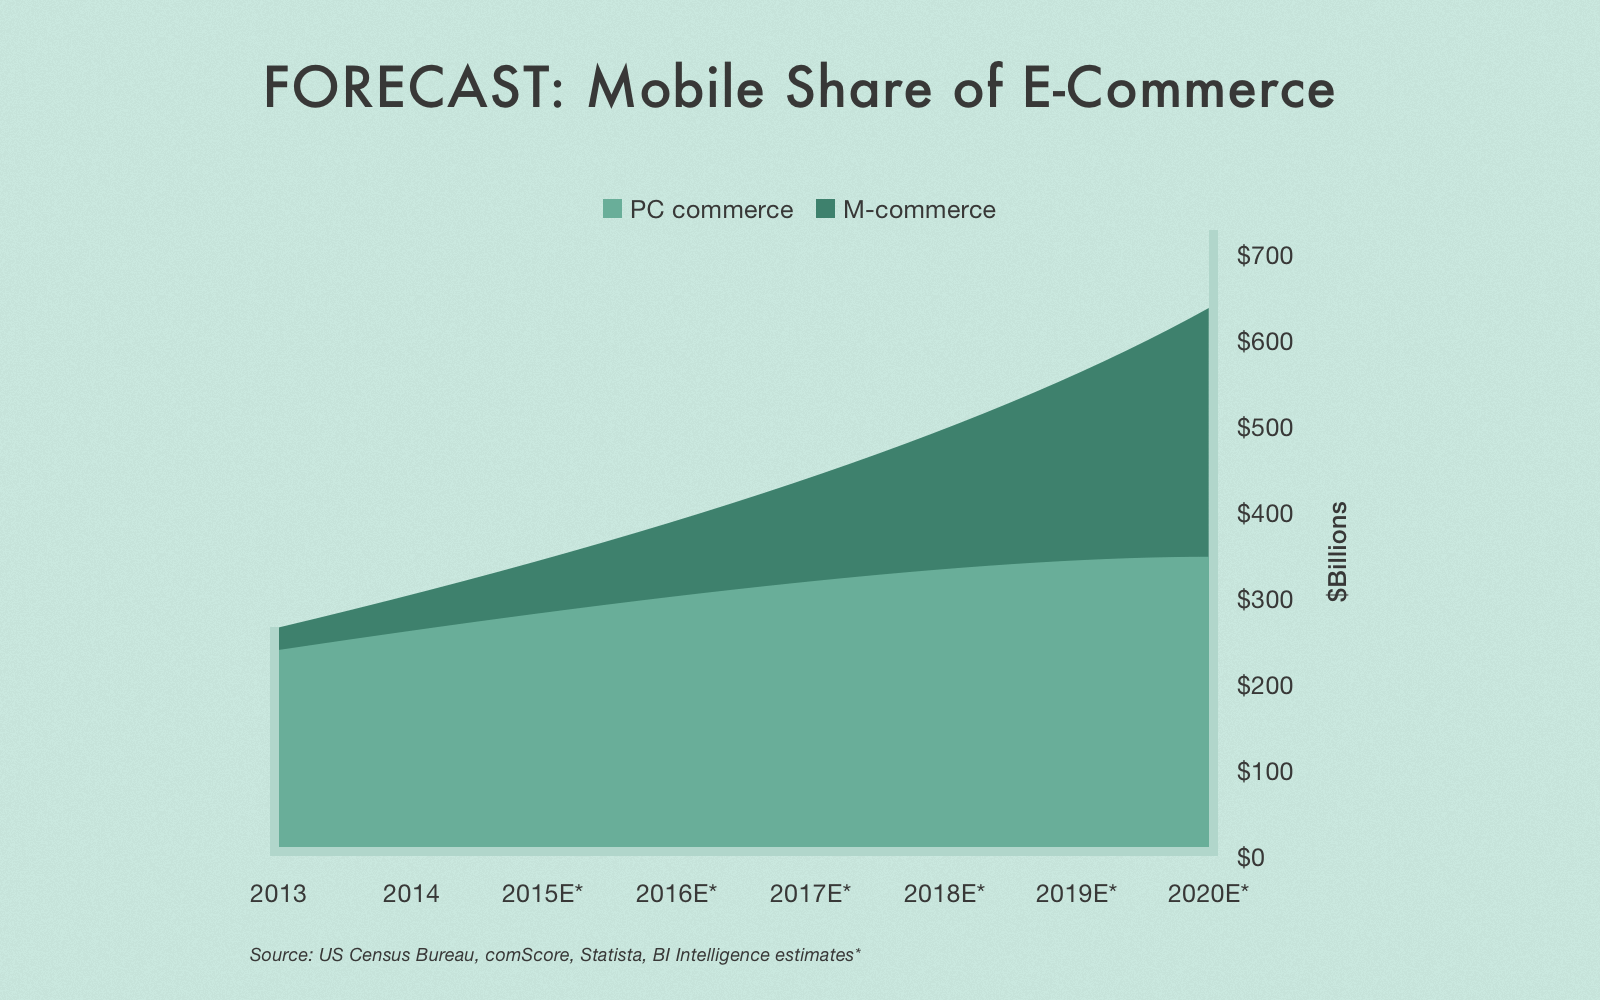 Create online store app is important due to growing mobile share in the e-commerce market